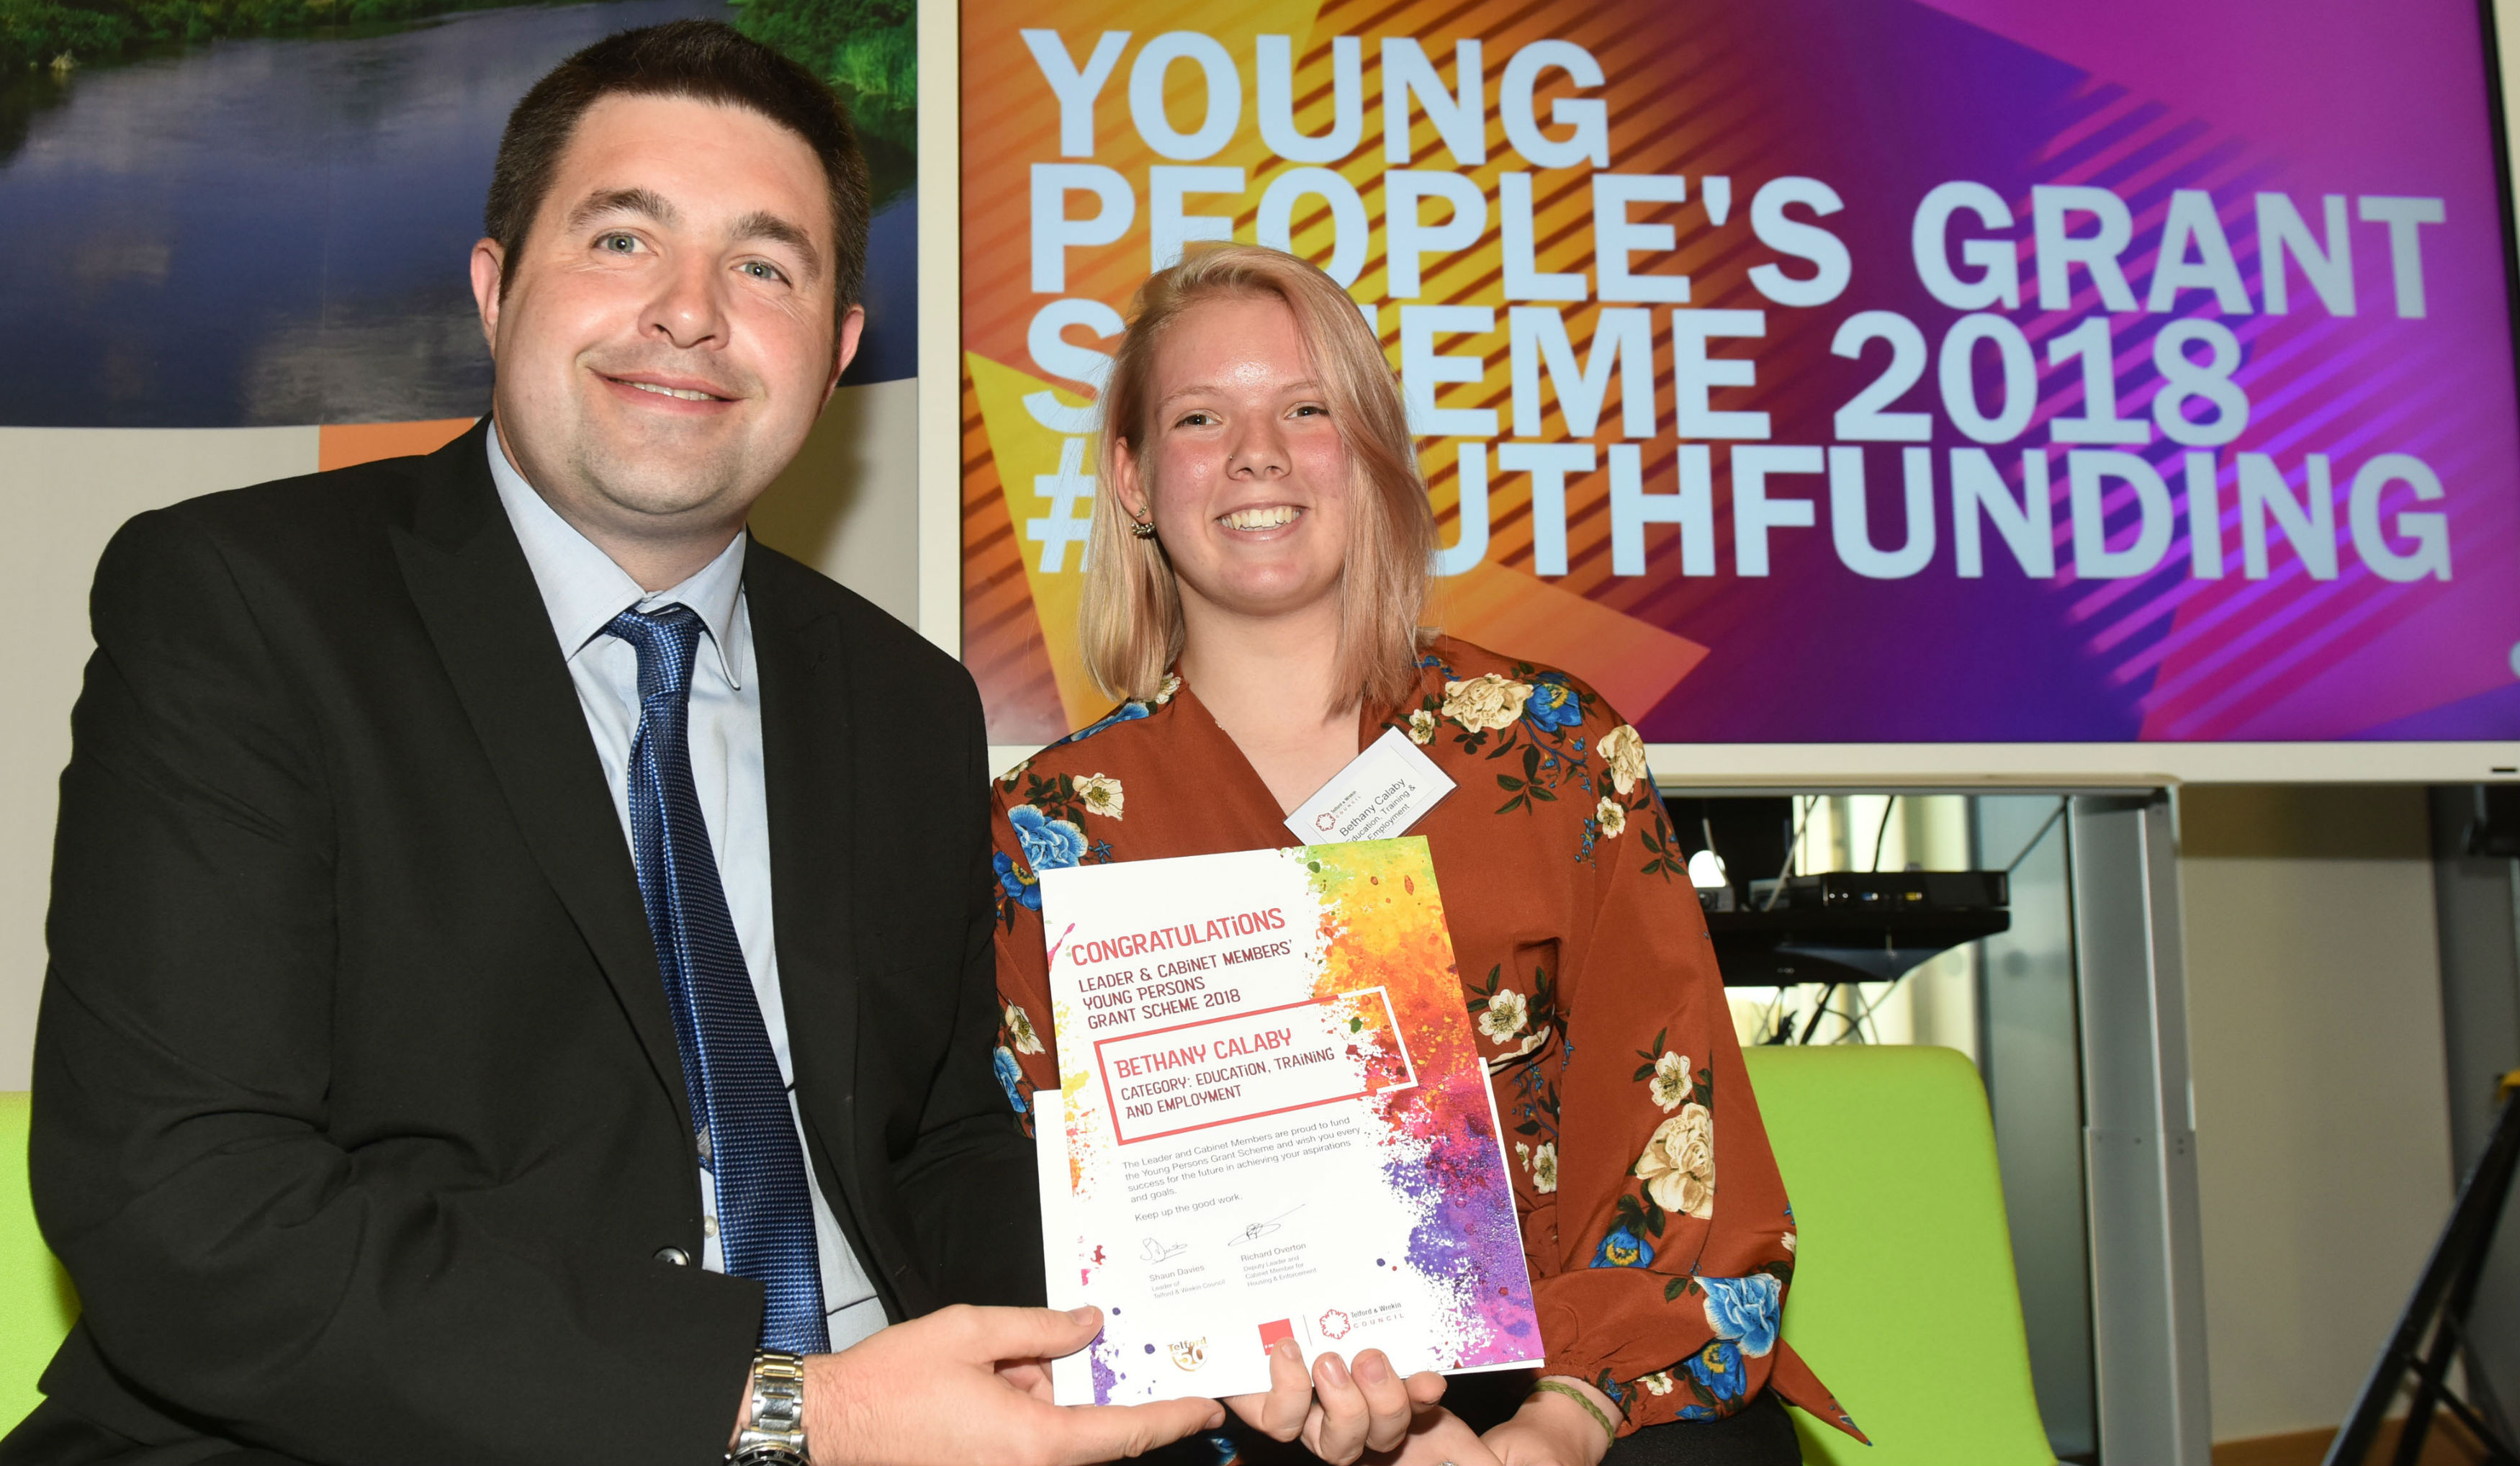 Helping young people achieve